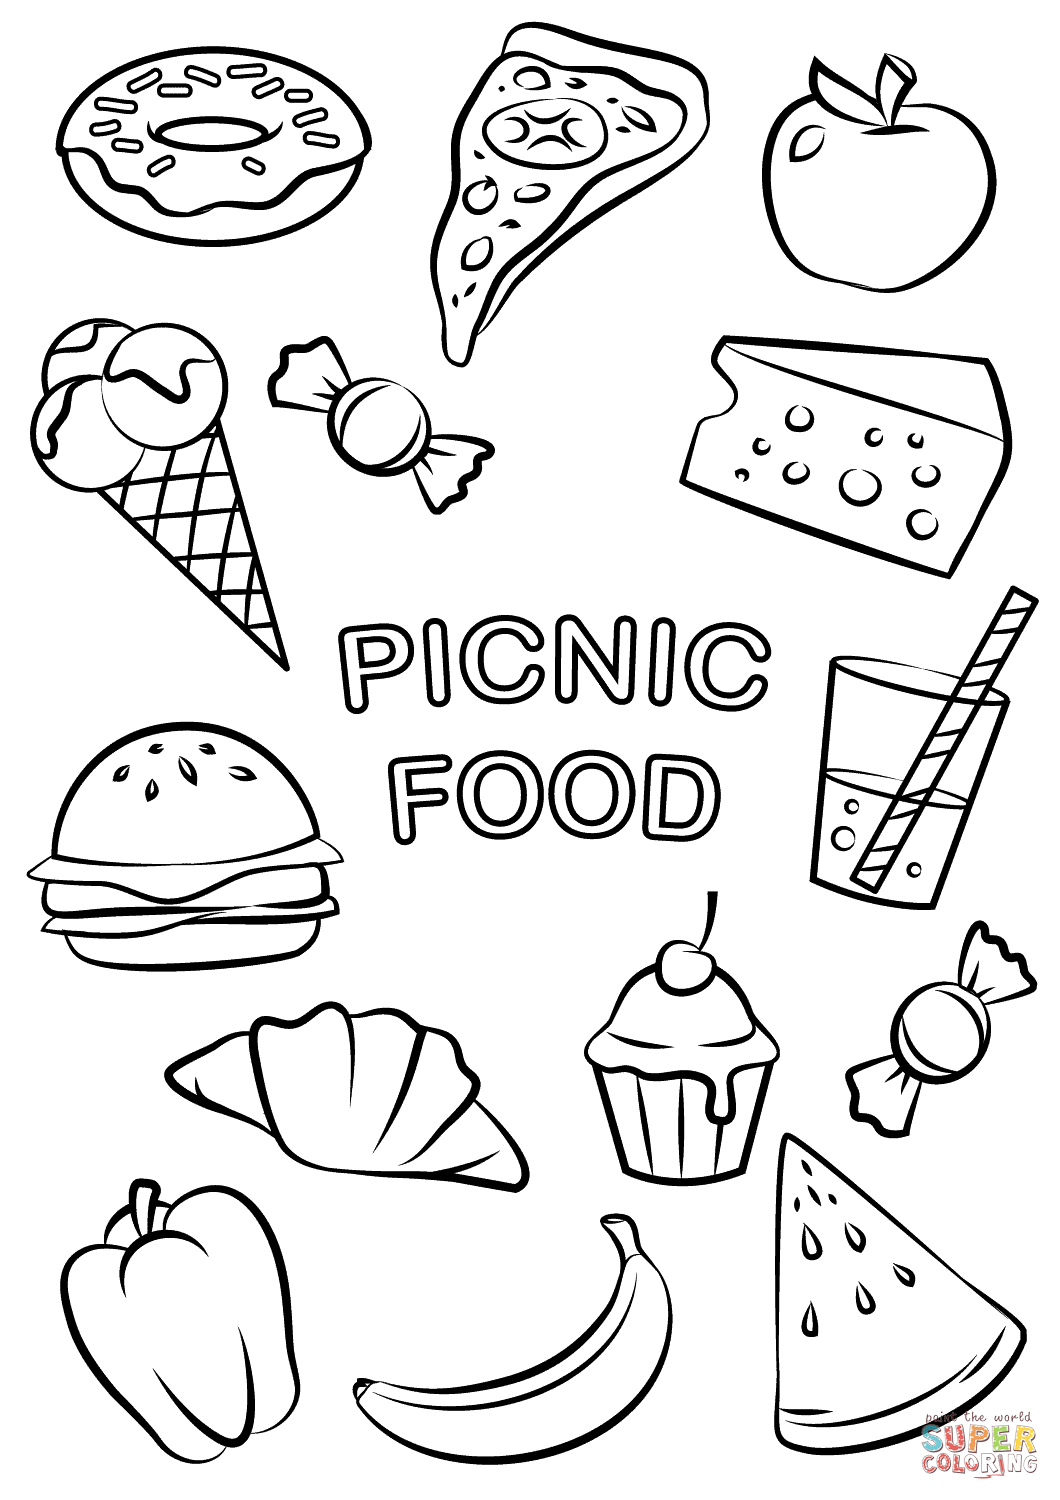 1060x1500 Nice Food Coloring Pages To Print For Preschoolers Adults